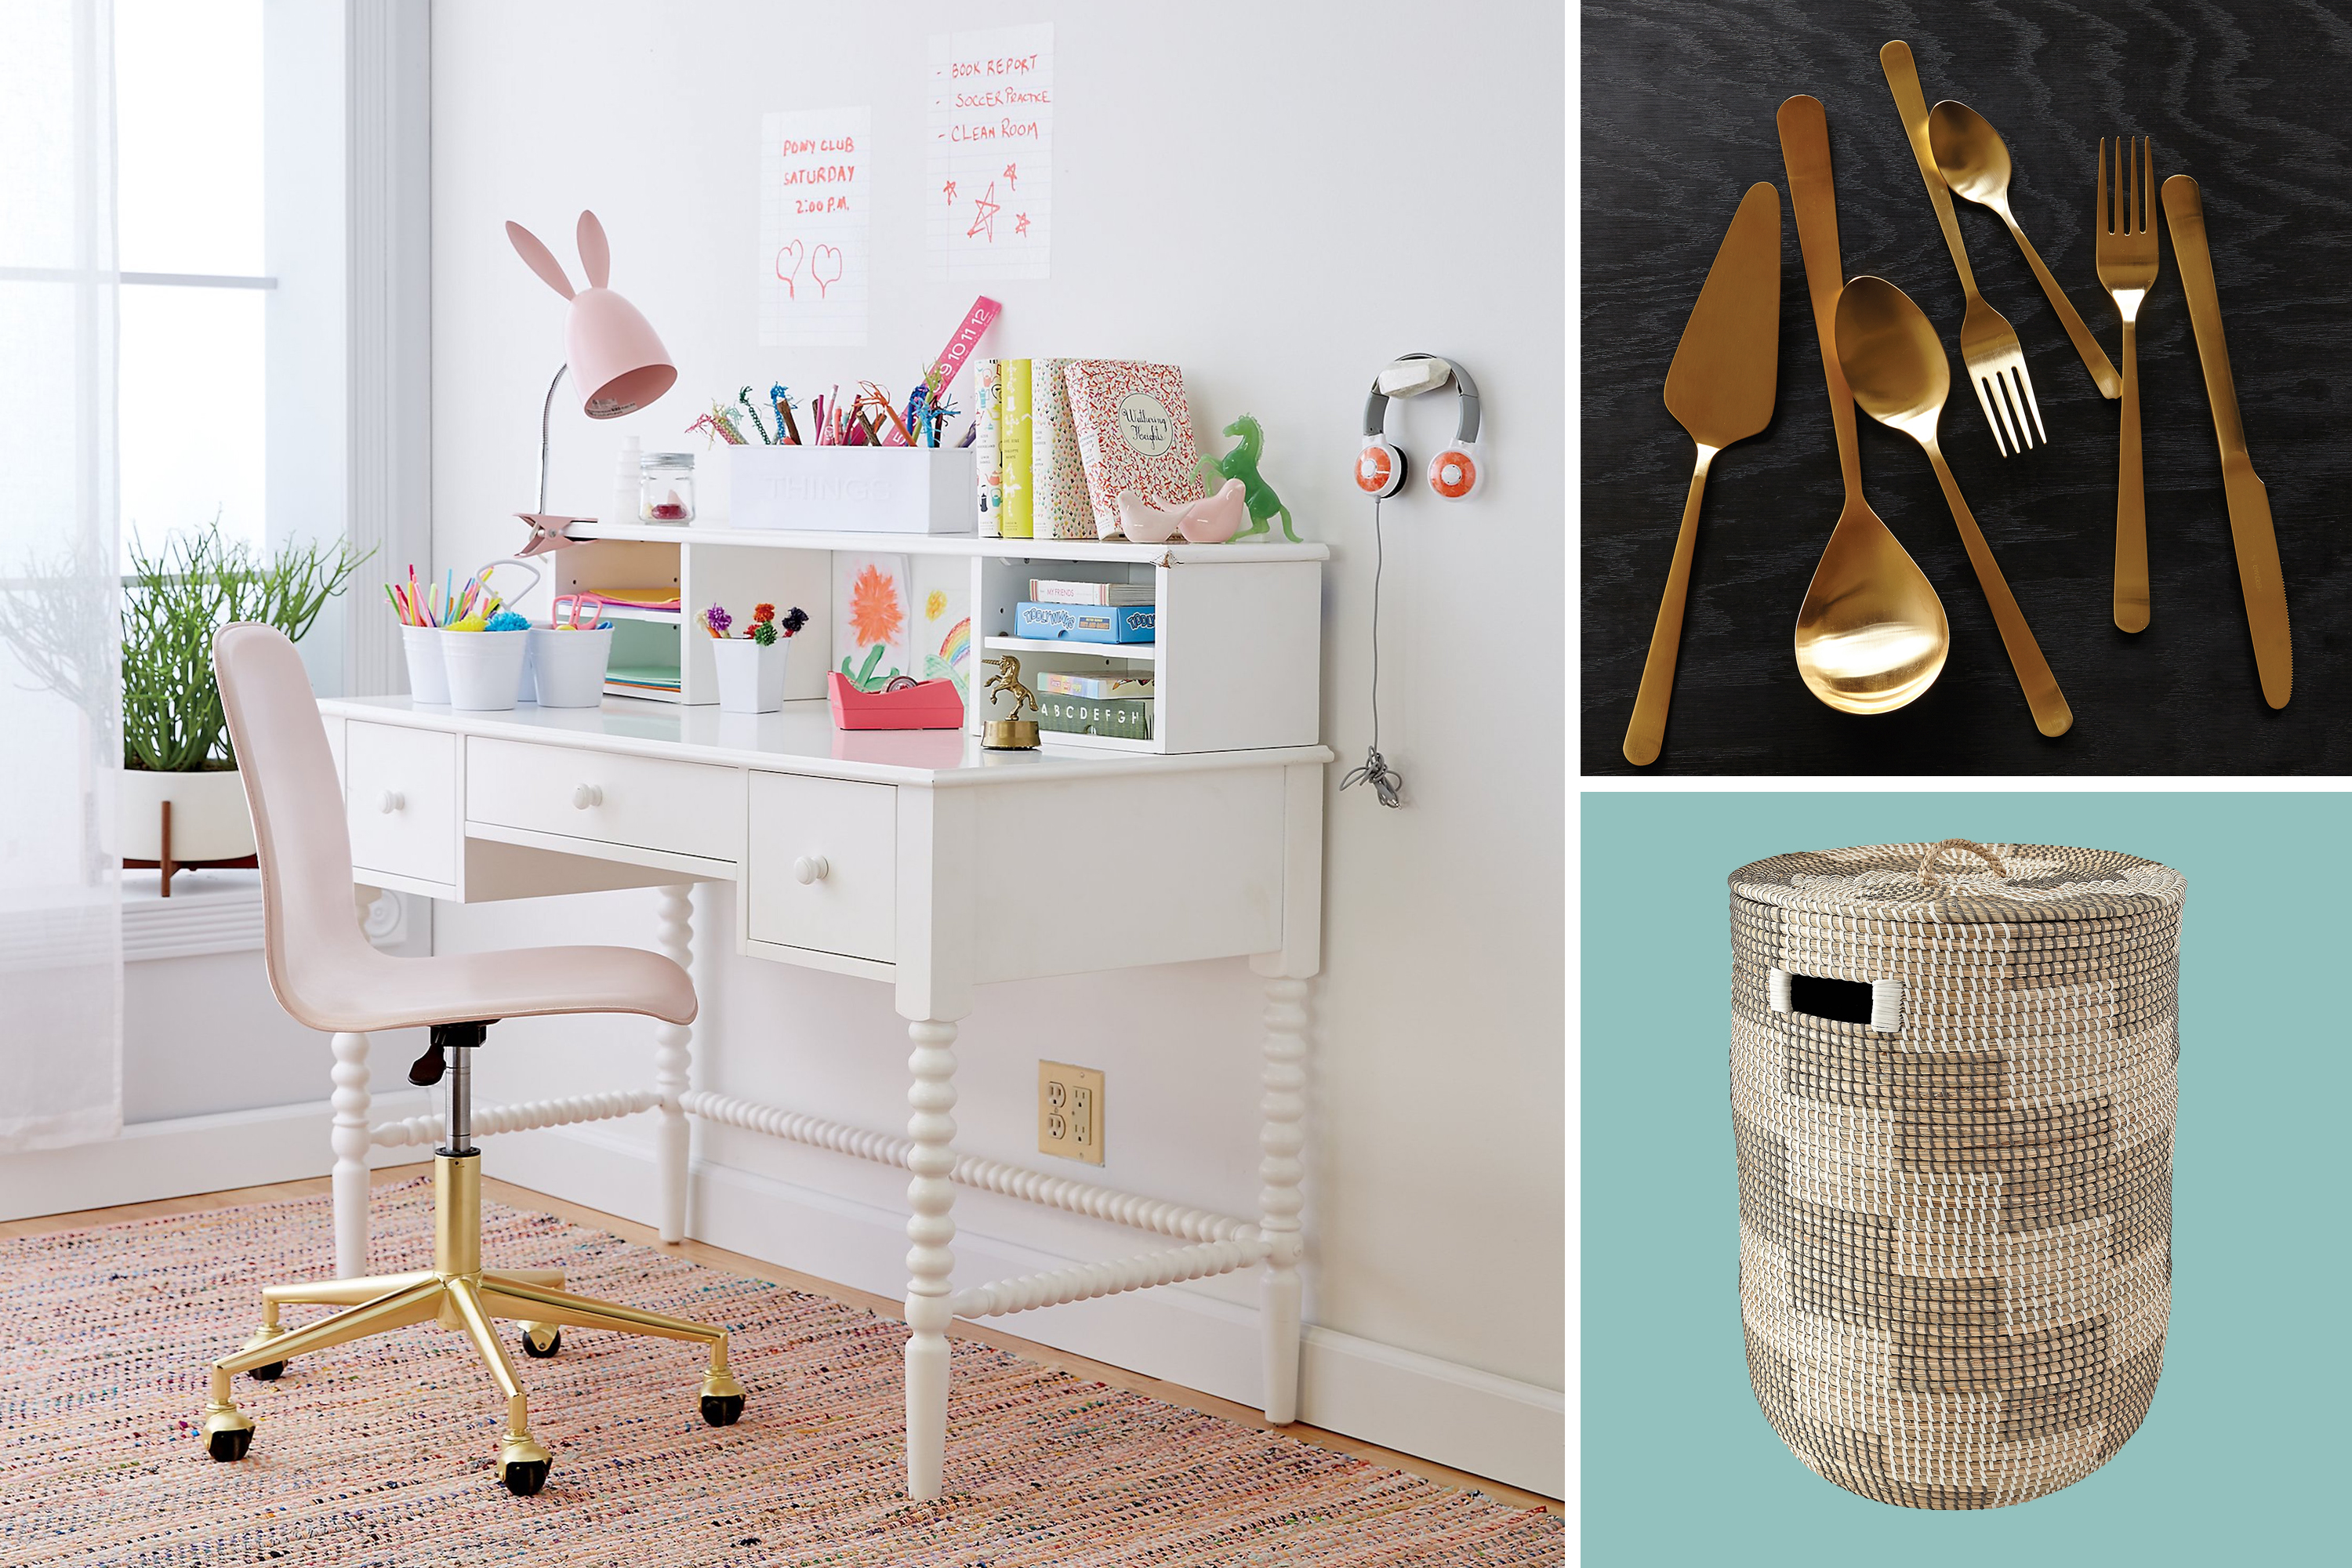 (clockwise from top right) Gold cutlery from Canvas Home, Merchant Silver Hamper from Land of Nod, Jenny Lind Spindle Desk and Hutch from Land of Nod